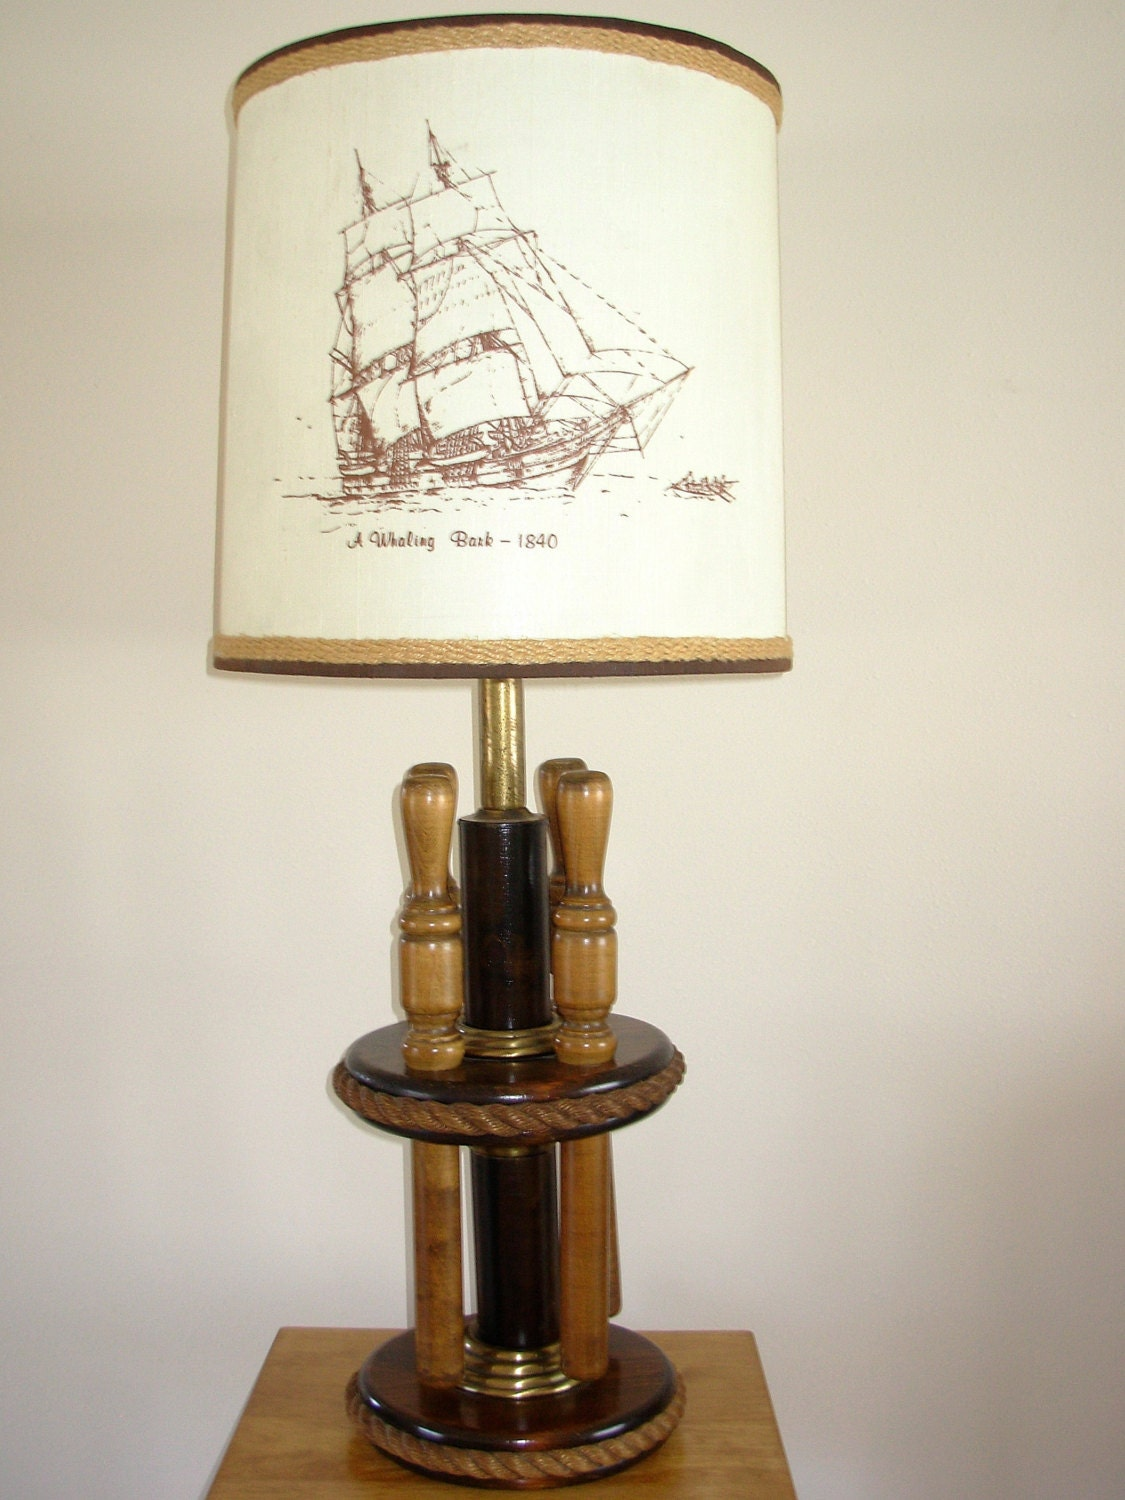 Lighthouse Touch Lamp Vintage Milford Guild Nautical Lamp With Belaying Pins